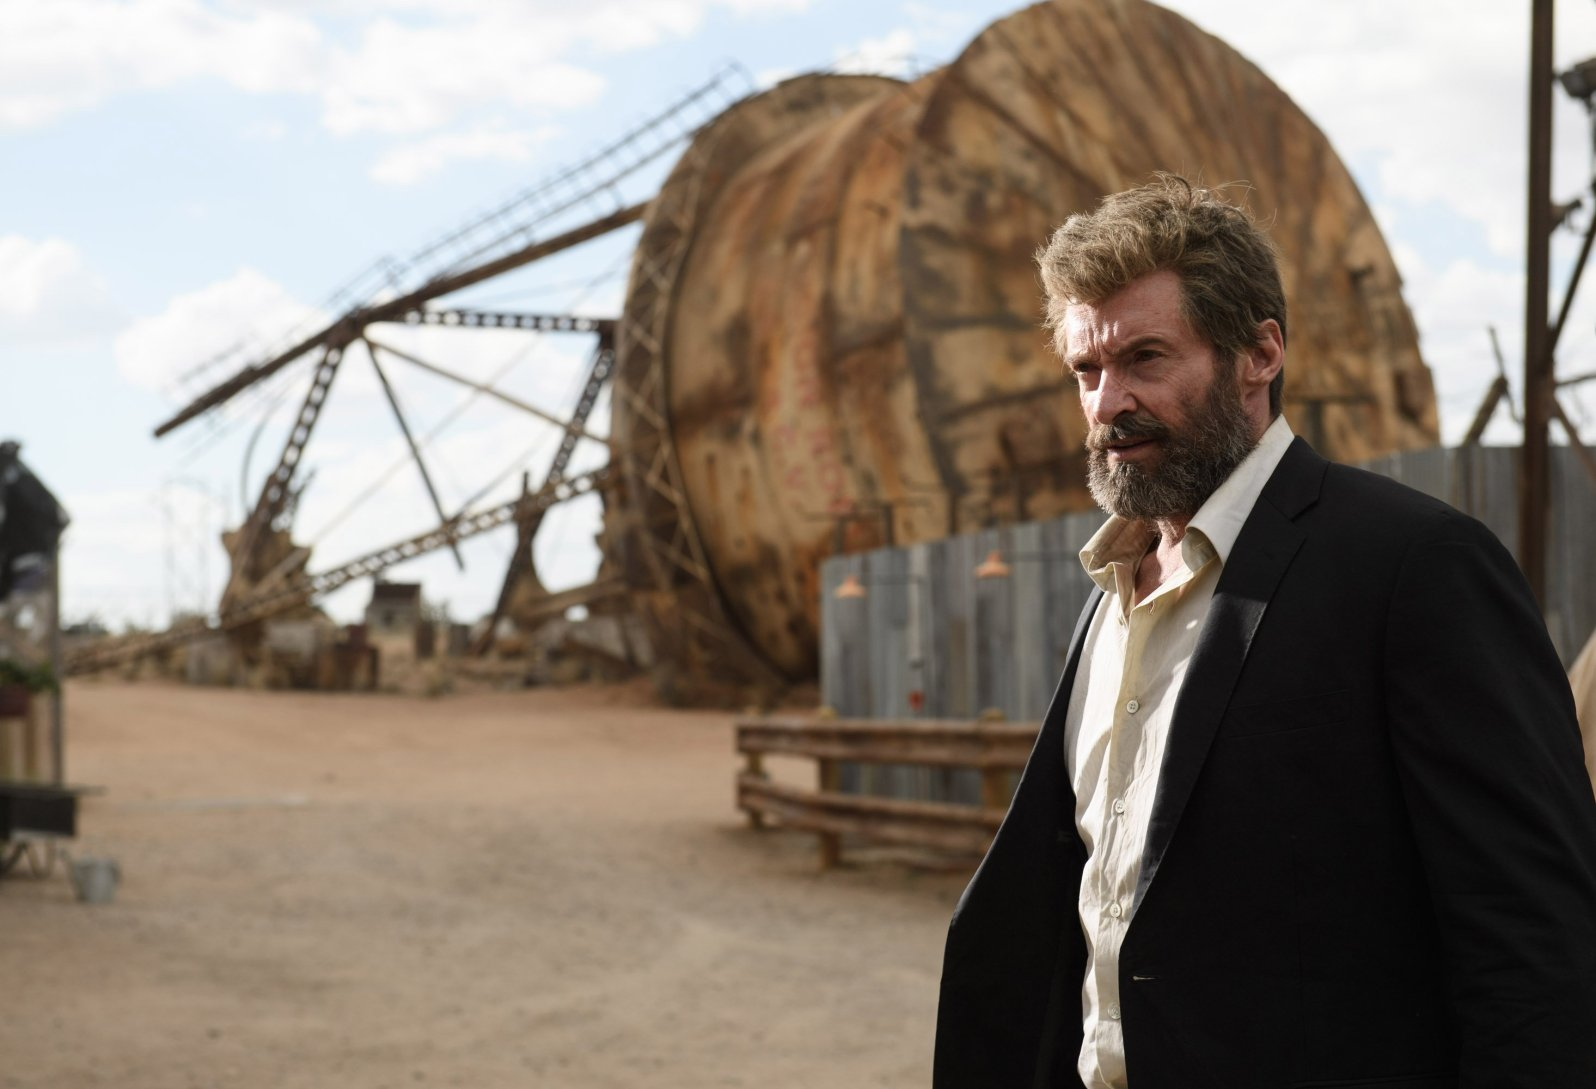 Logan / Production Designer: Francois Audouy / Twentieth Century Fox